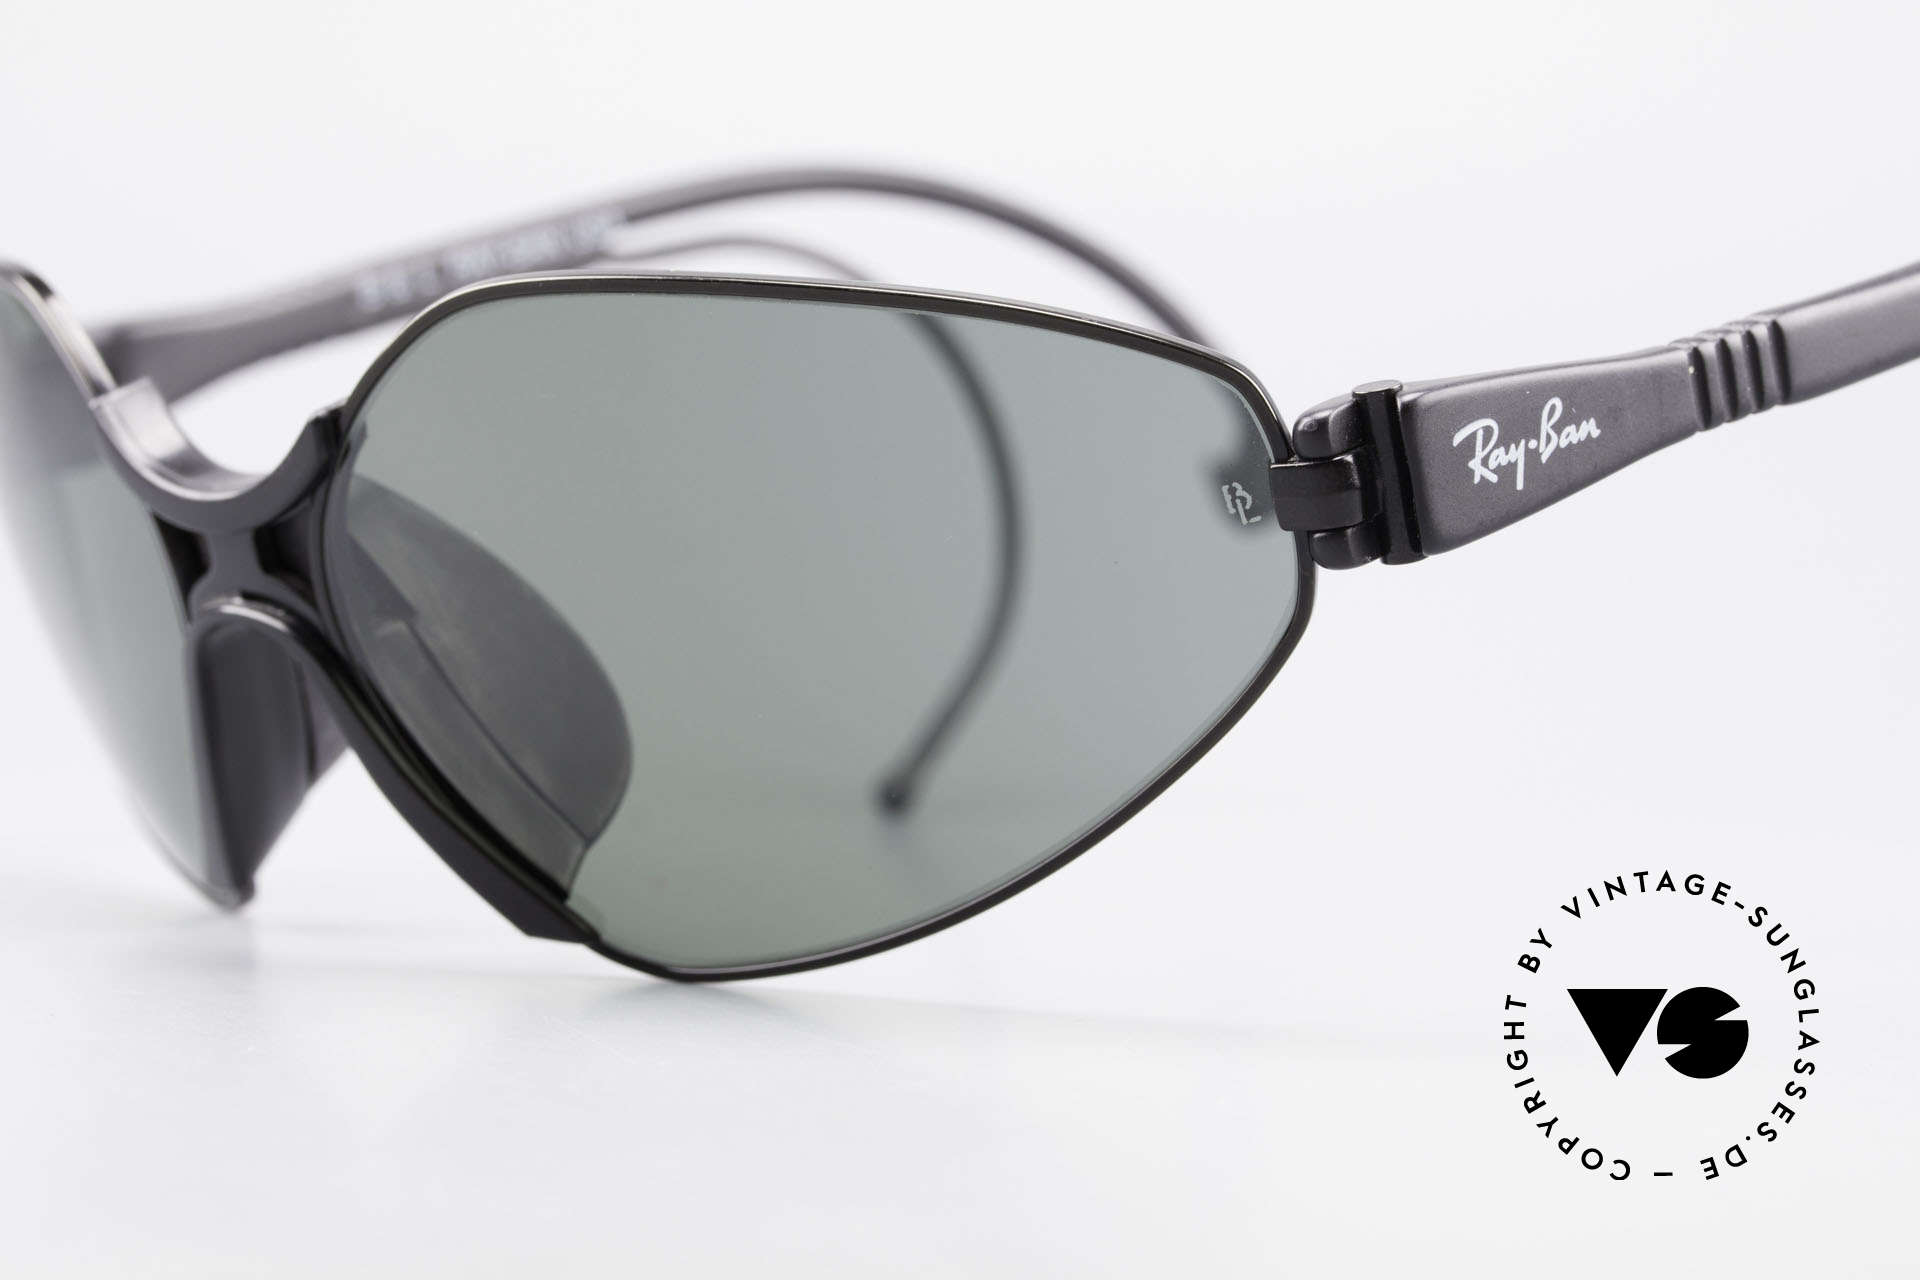 Ray Ban Sport Series 1 G20 Chromax B&L Sun Lenses, never worn (like all our VINTAGE Ray Ban shades), Made for Men